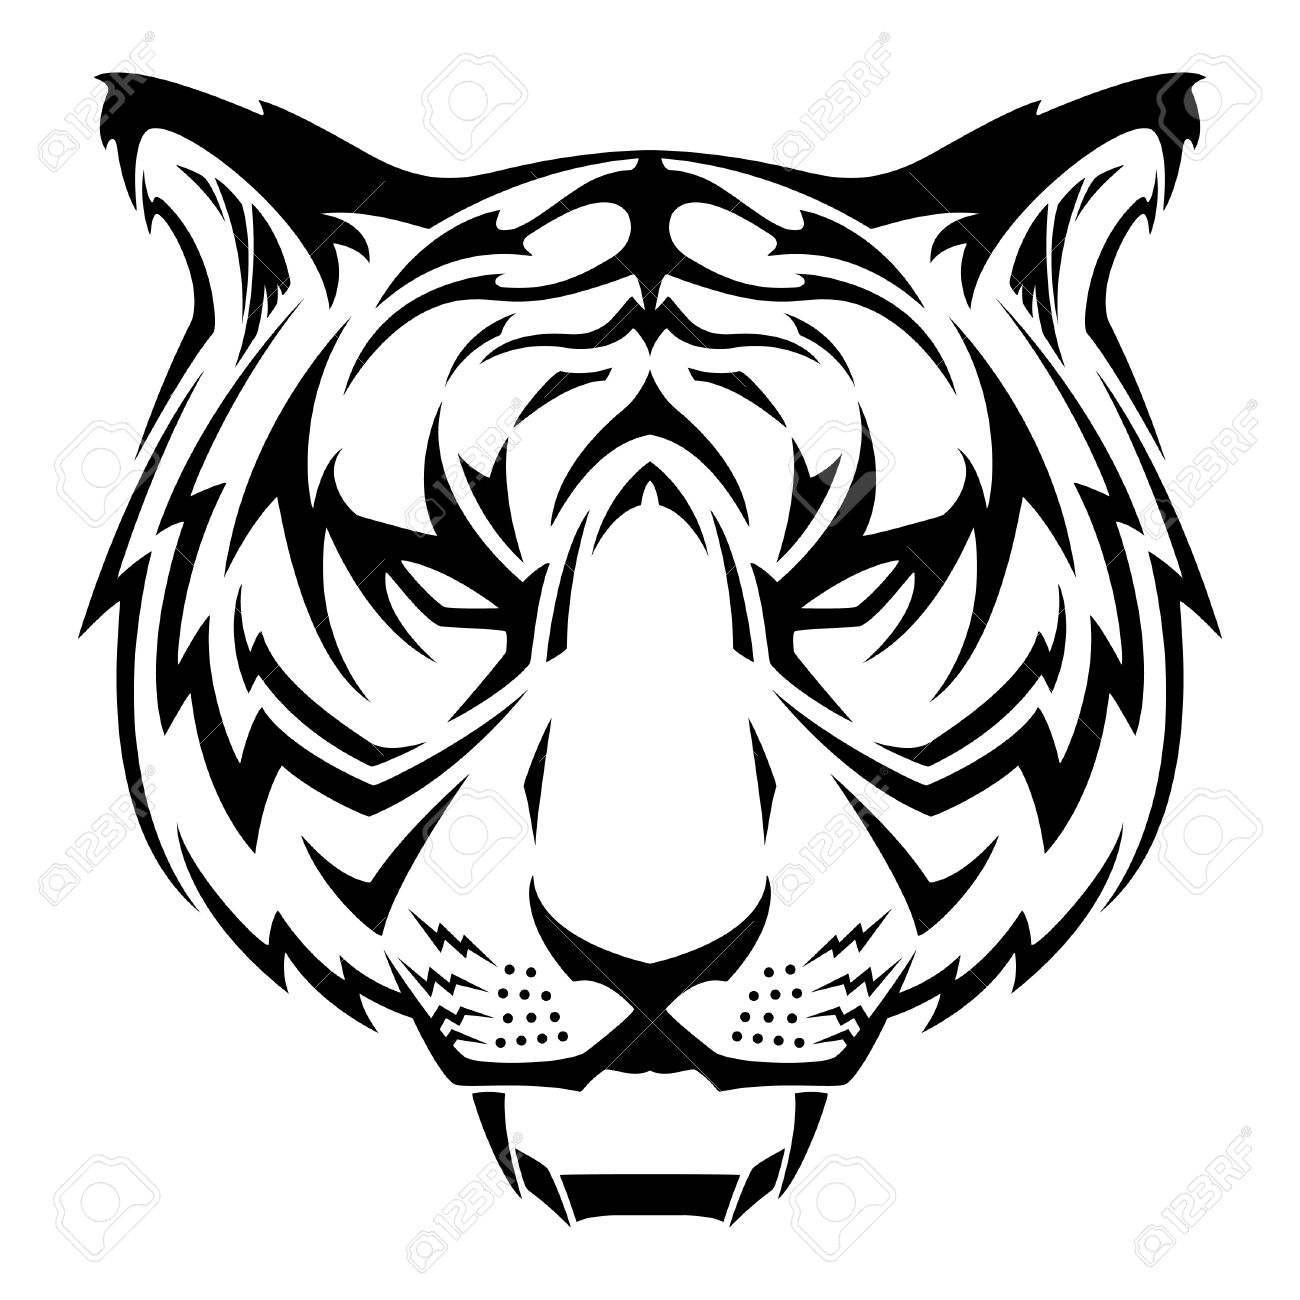 Tiger Tattoo Design Royalty Free Cliparts Vectors And Stock